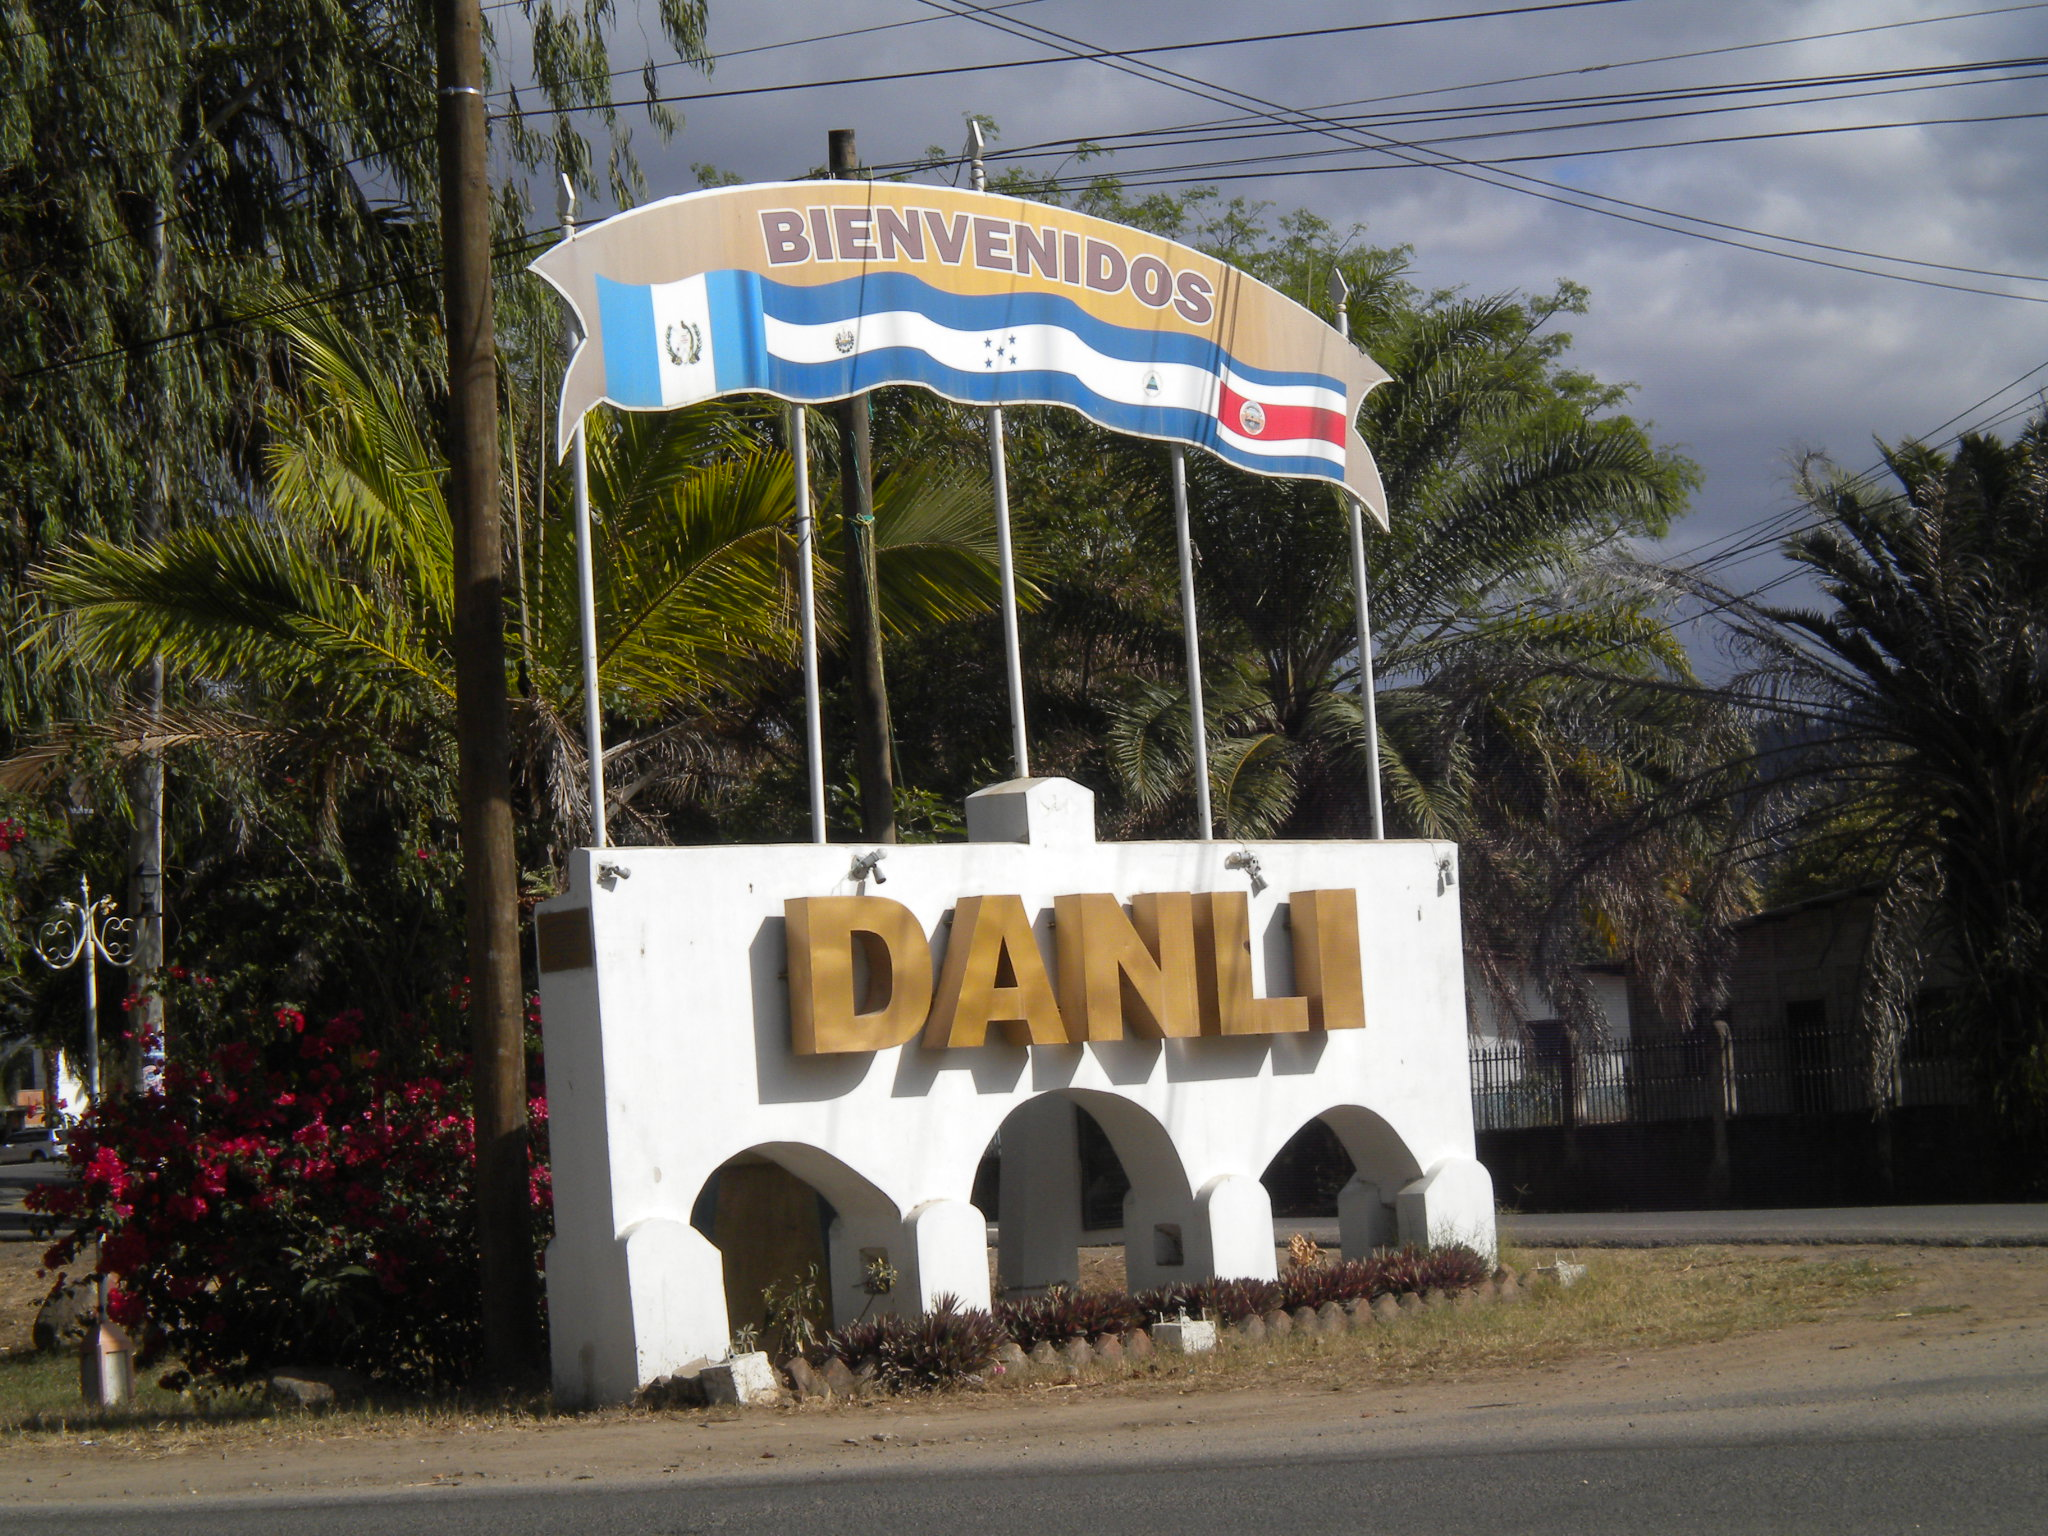 danli men Current, accurate and in depth facts on honduras unique cultural information provided 35,000 + pages countryreports - your world discovered.